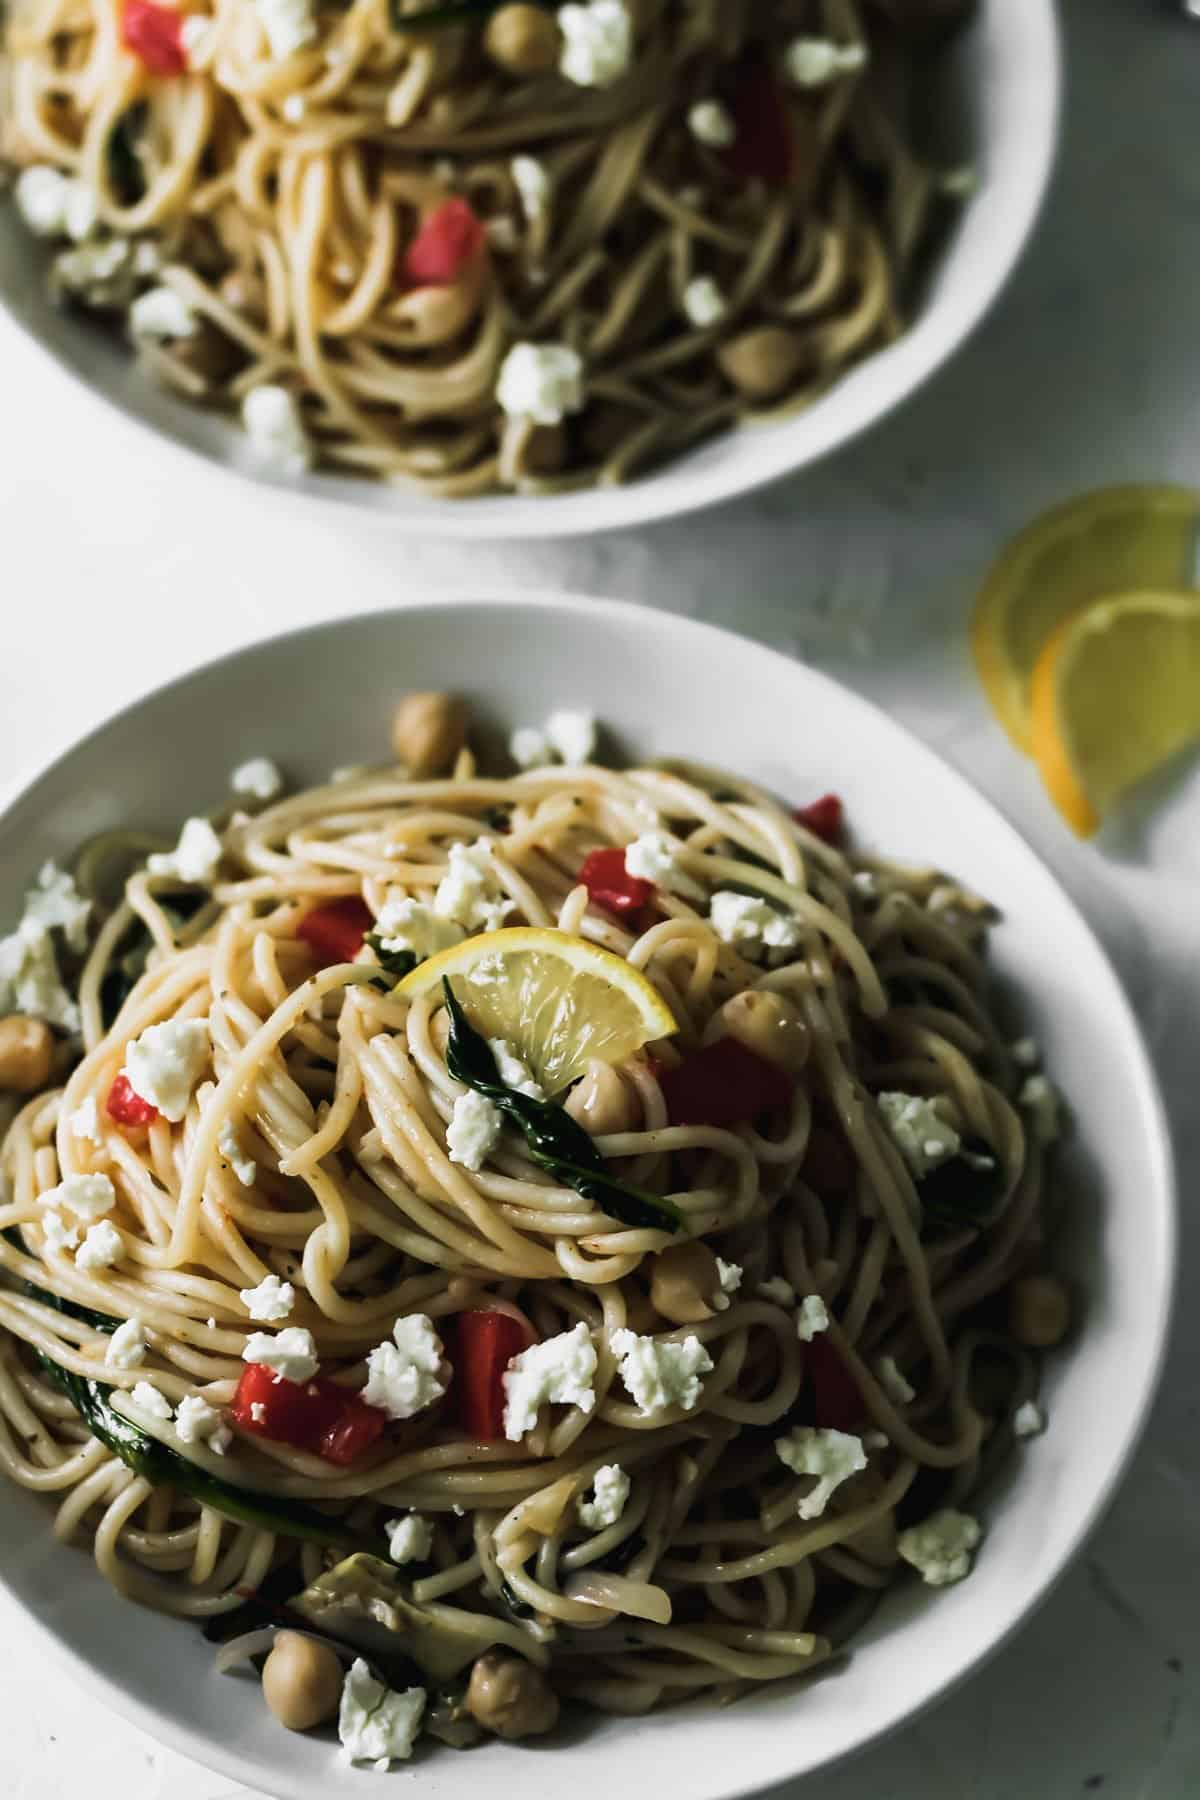 Mediterranean garlic and olive oil pasta in a white bowl with lemons on the side.